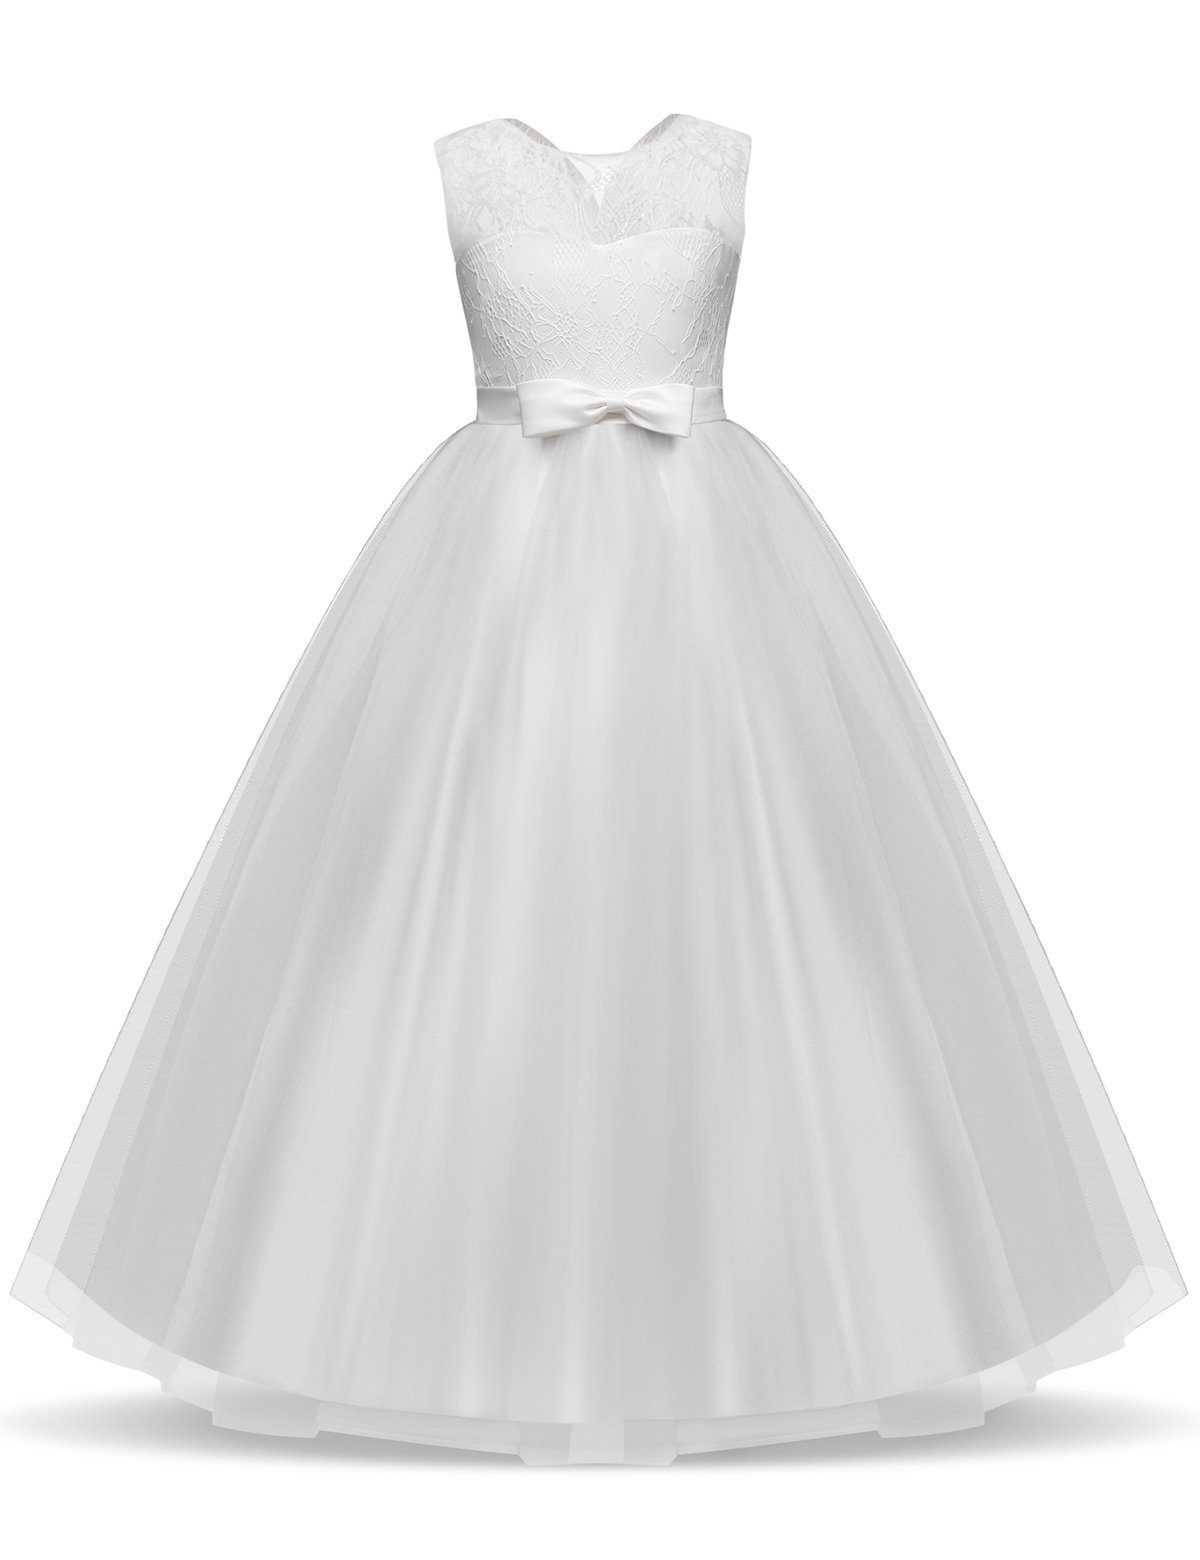 TTYAOVO Girls Pageant Ball Gowns Kids Chiffon Embroidered Wedding Party Dress Size 7-8 Years White